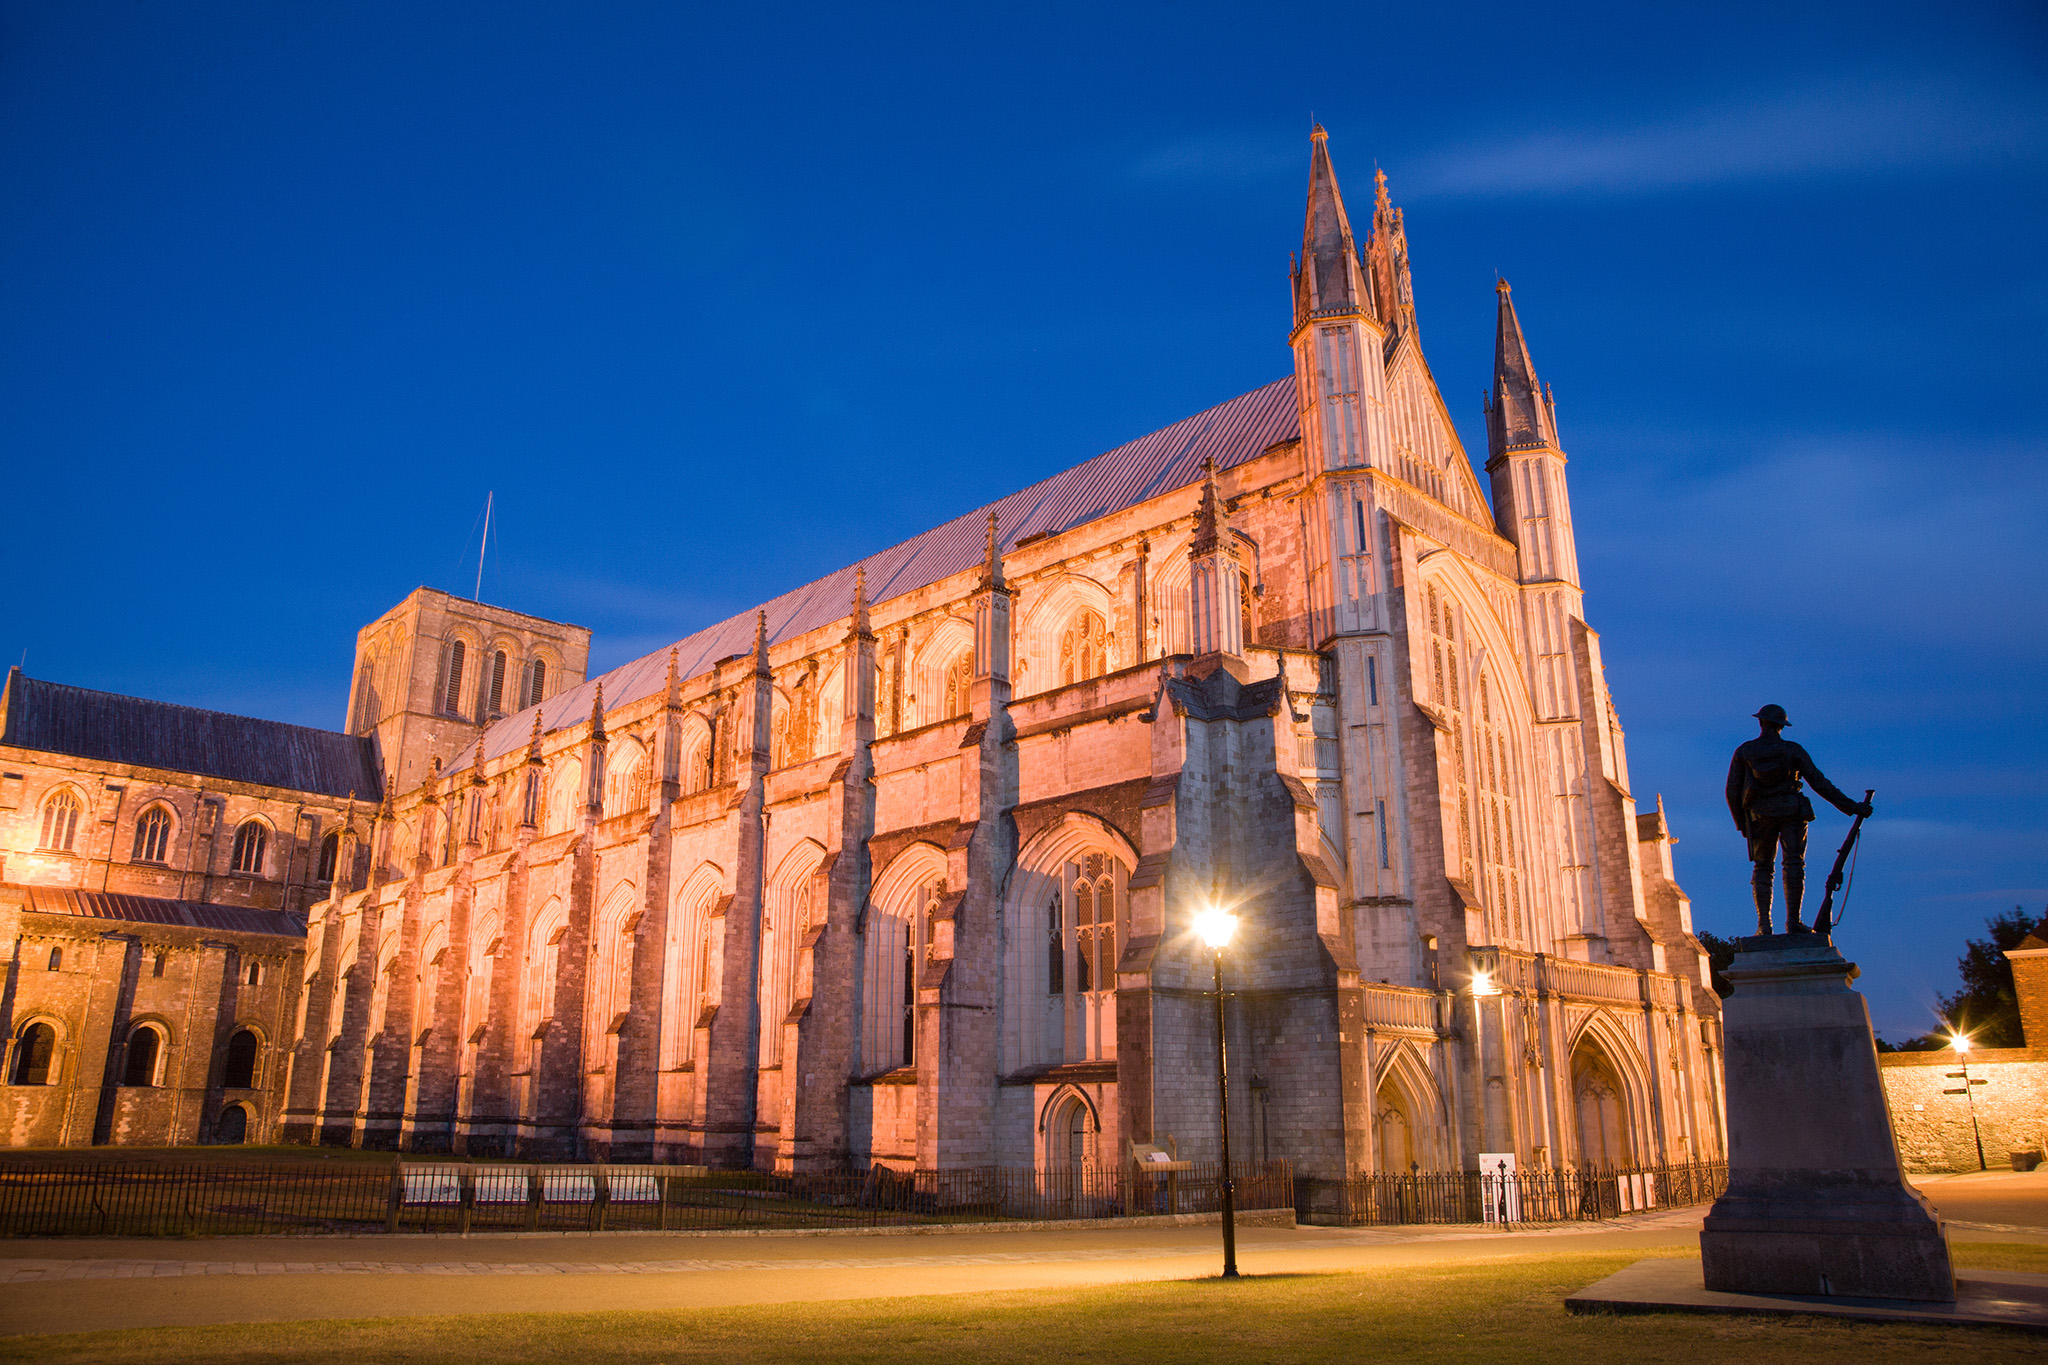 Winchester Cathedral at dusk, Hampshire, England. Winchester is the ancient capital of England.